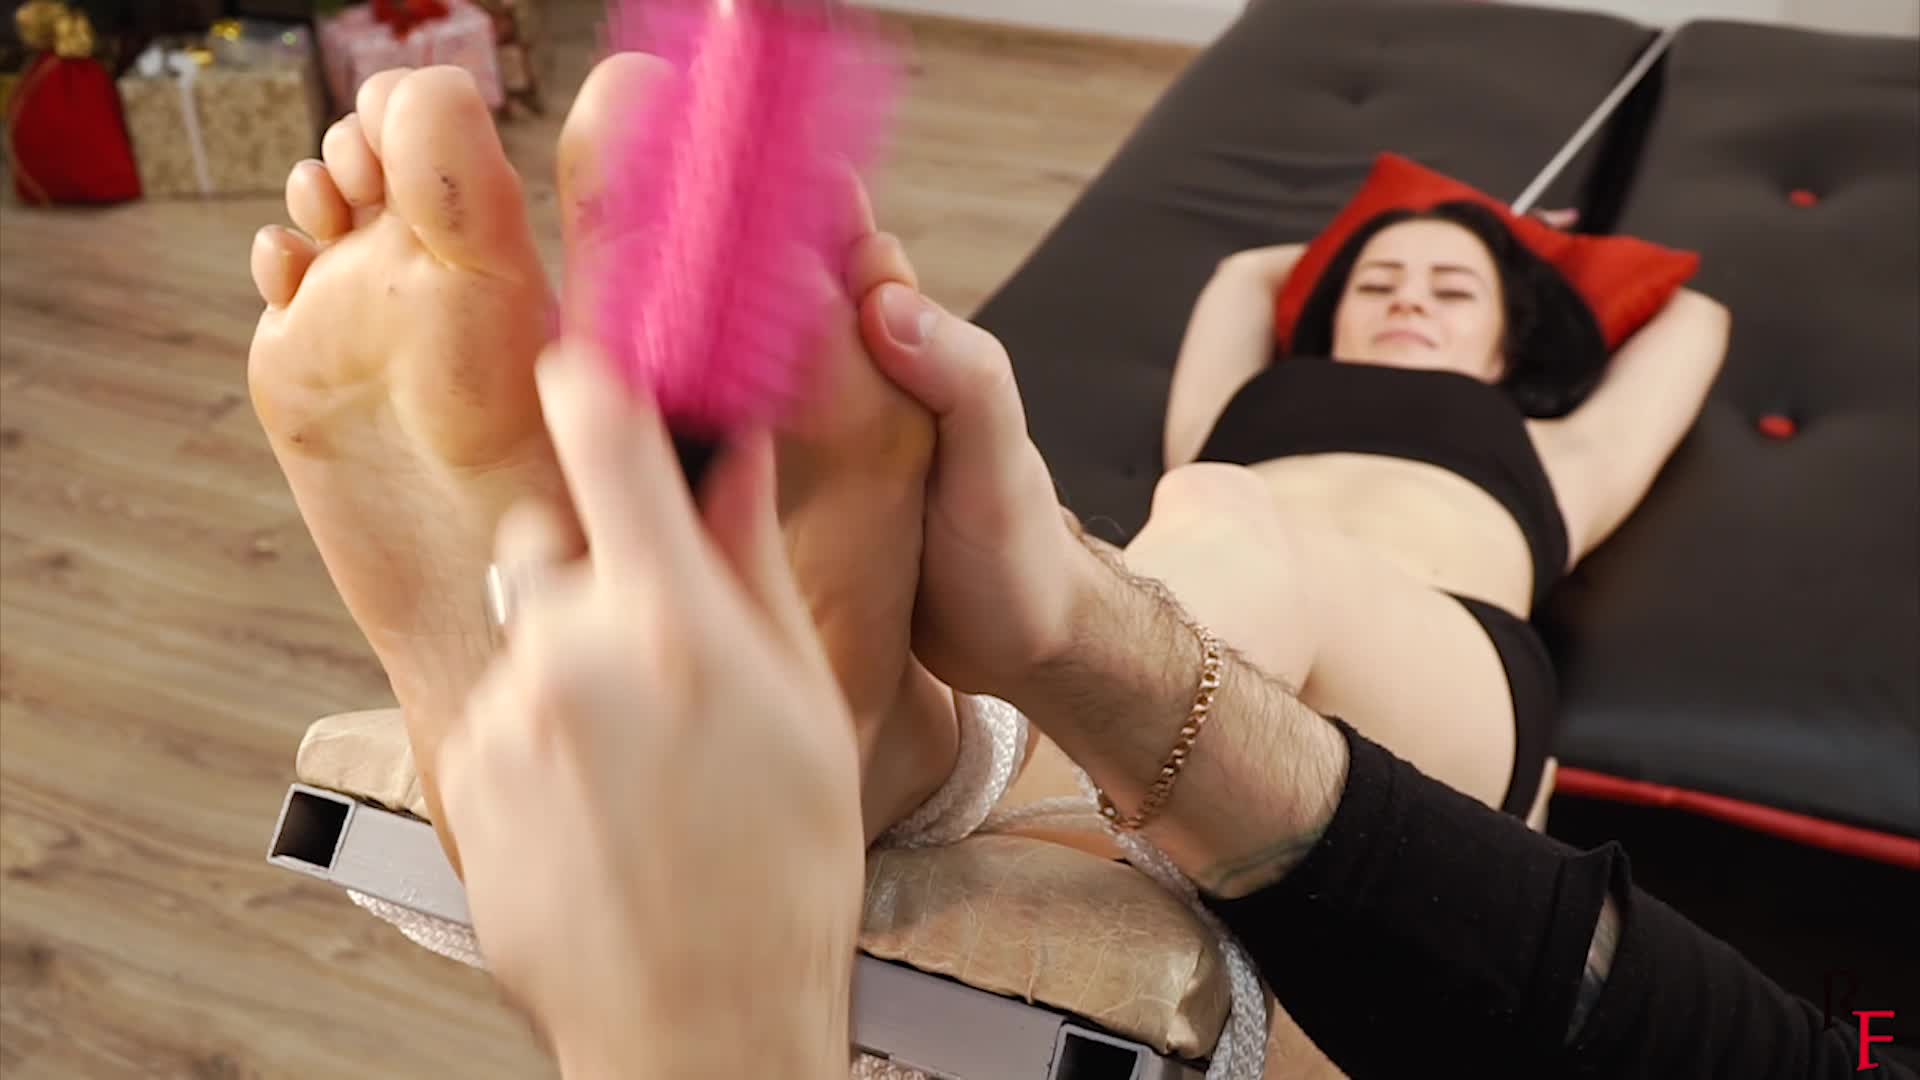 Girl Tied Up Feet Tickled